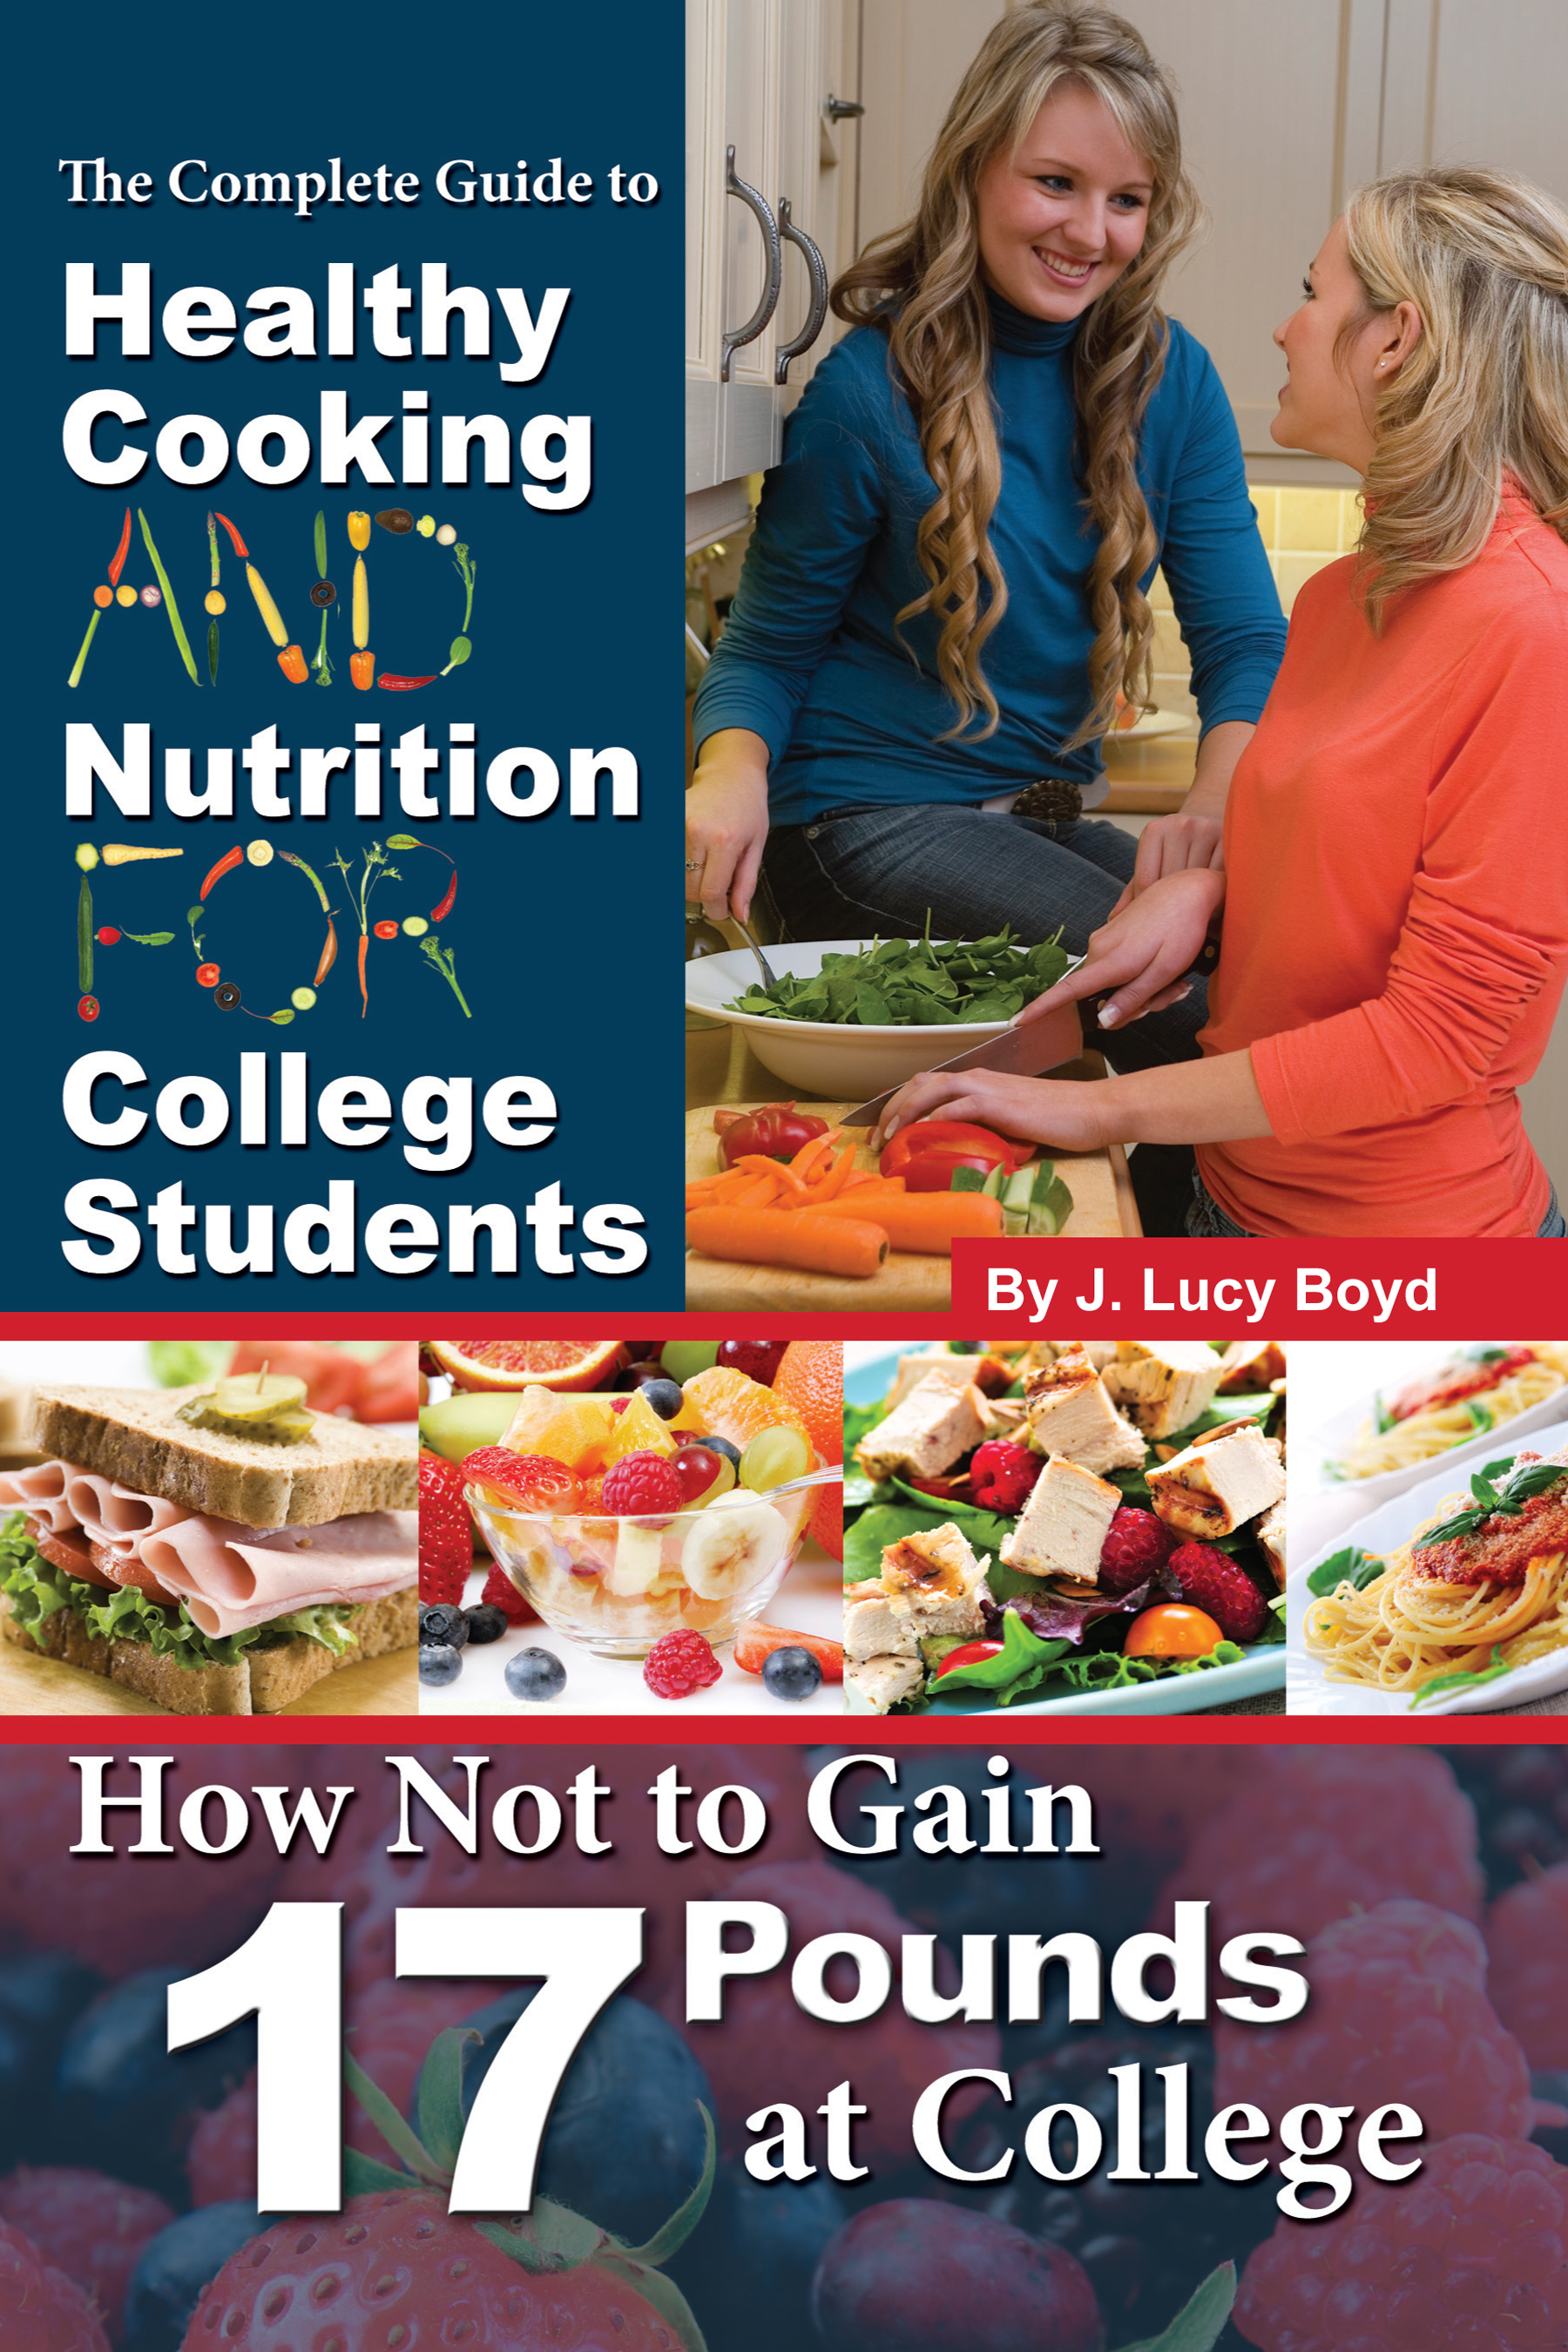 The Complete Guide to Healthy Cooking and Nutrition for College Students  How Not to Gain 17 Pounds at College